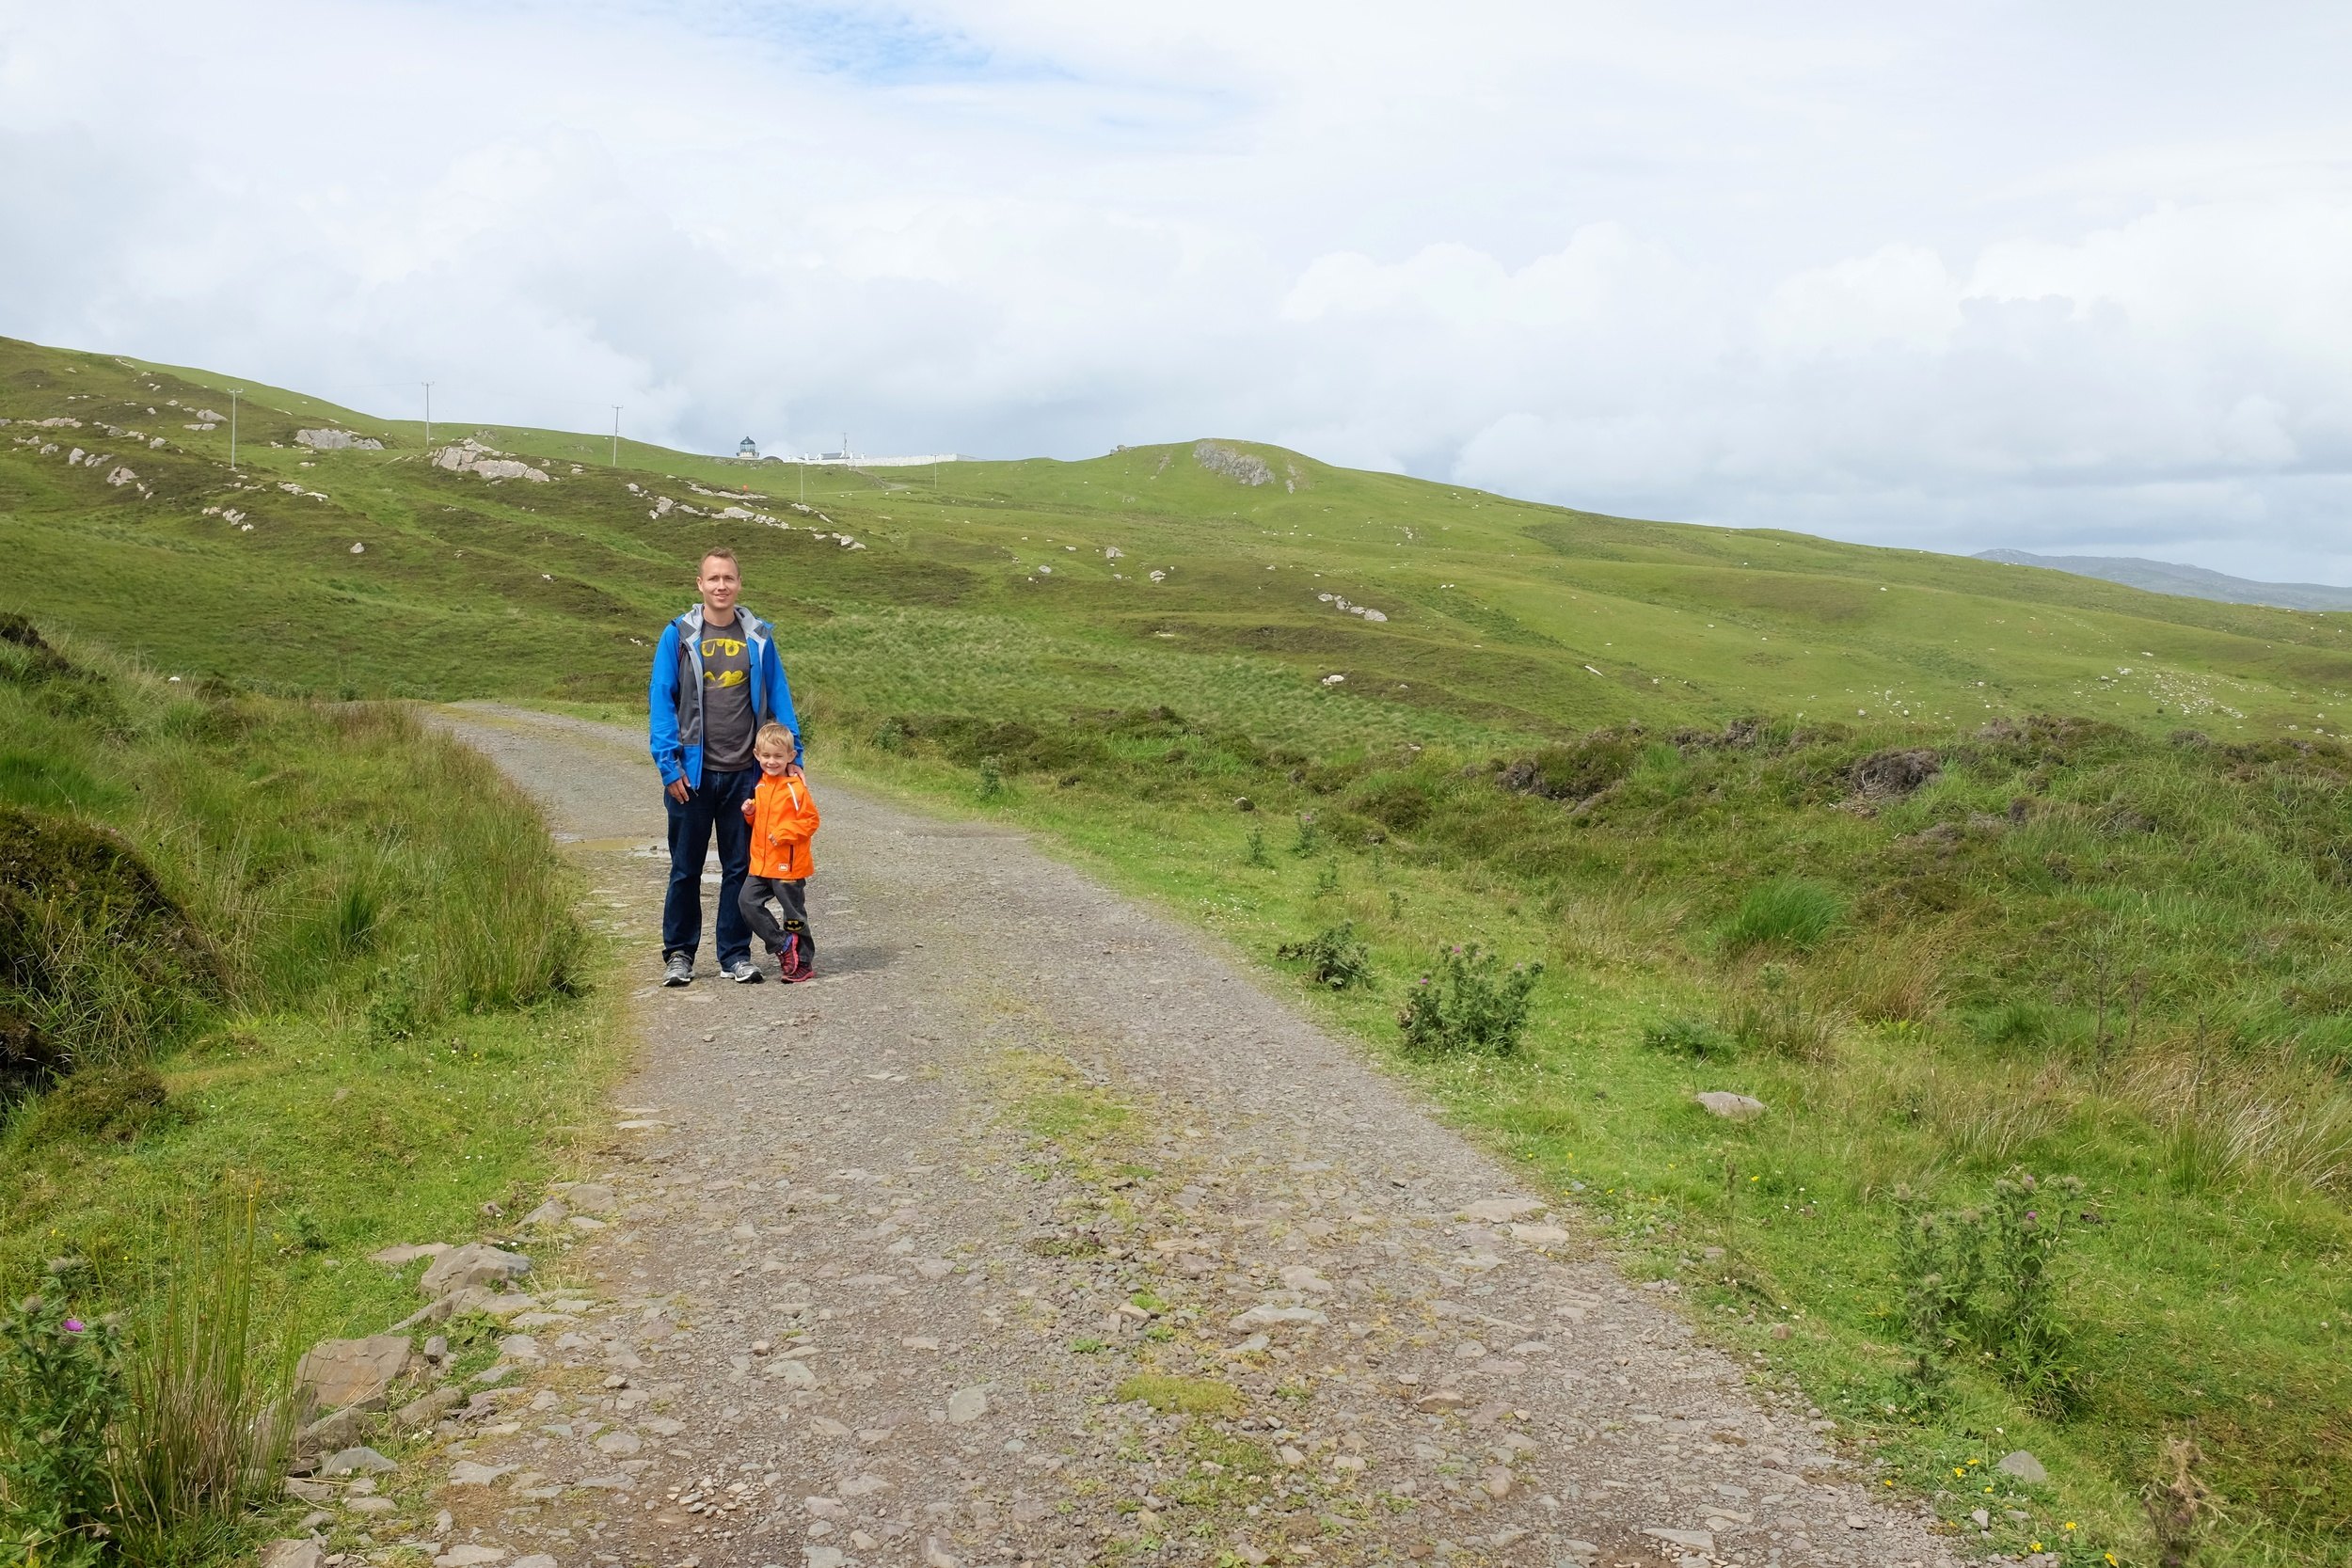 Kian and Daddy. If you look closely behind them you can see the top of the light house. We were getting close!